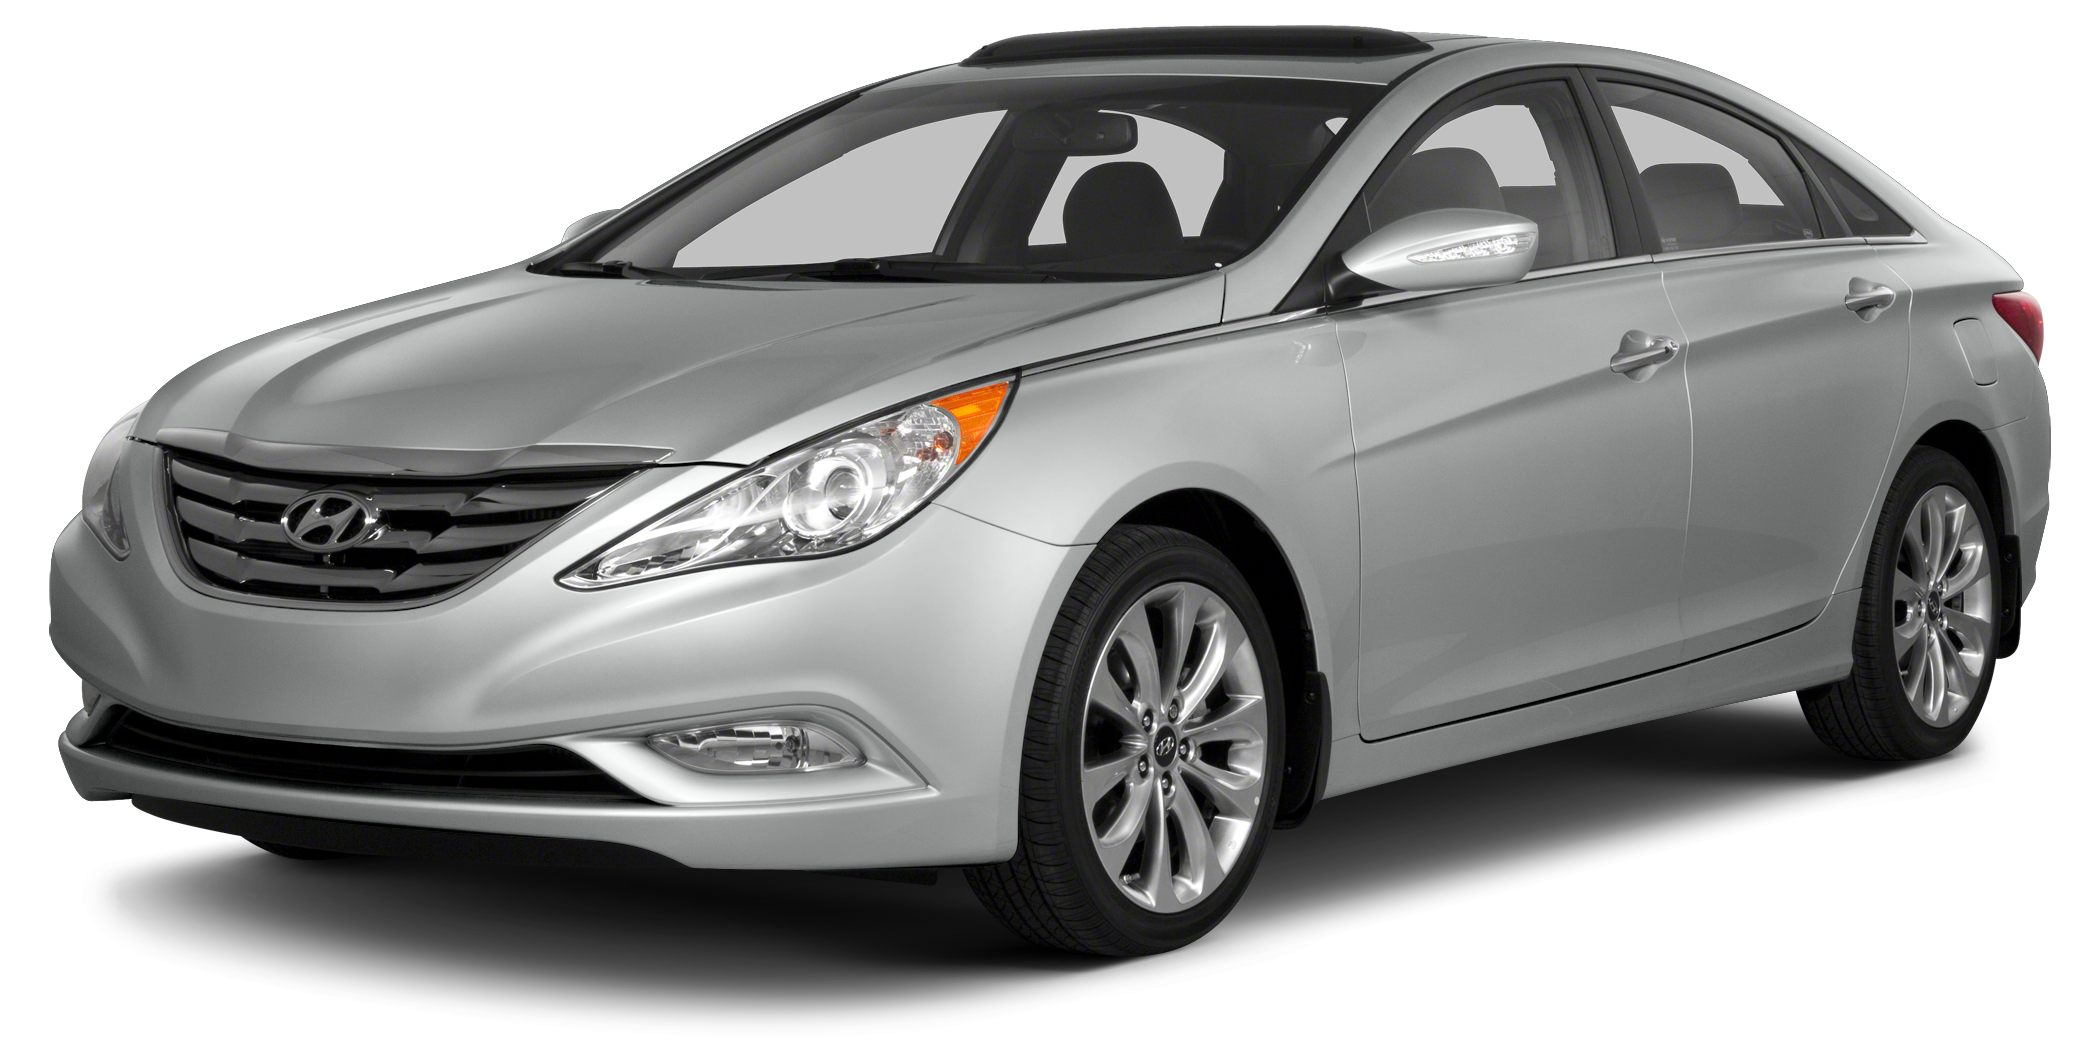 2013 Hyundai Sonata Limited Hyundai Factory Certified -- just 7k miles on this one owner Limited S